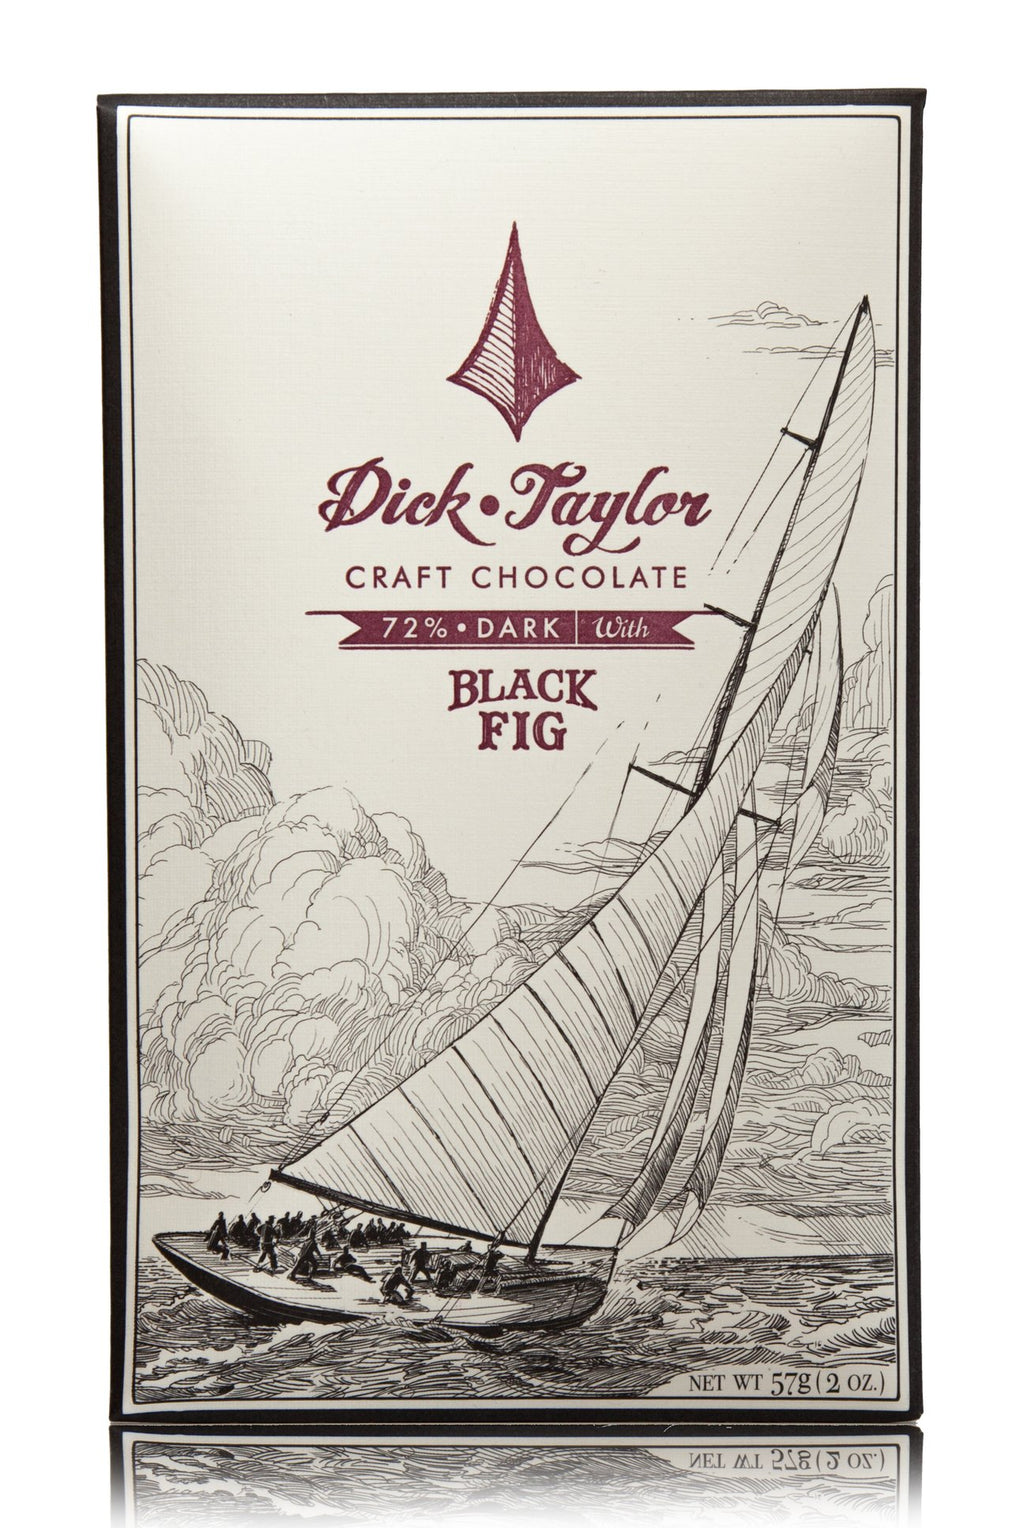 Dick Taylor Dark Chocolate - Black Fig